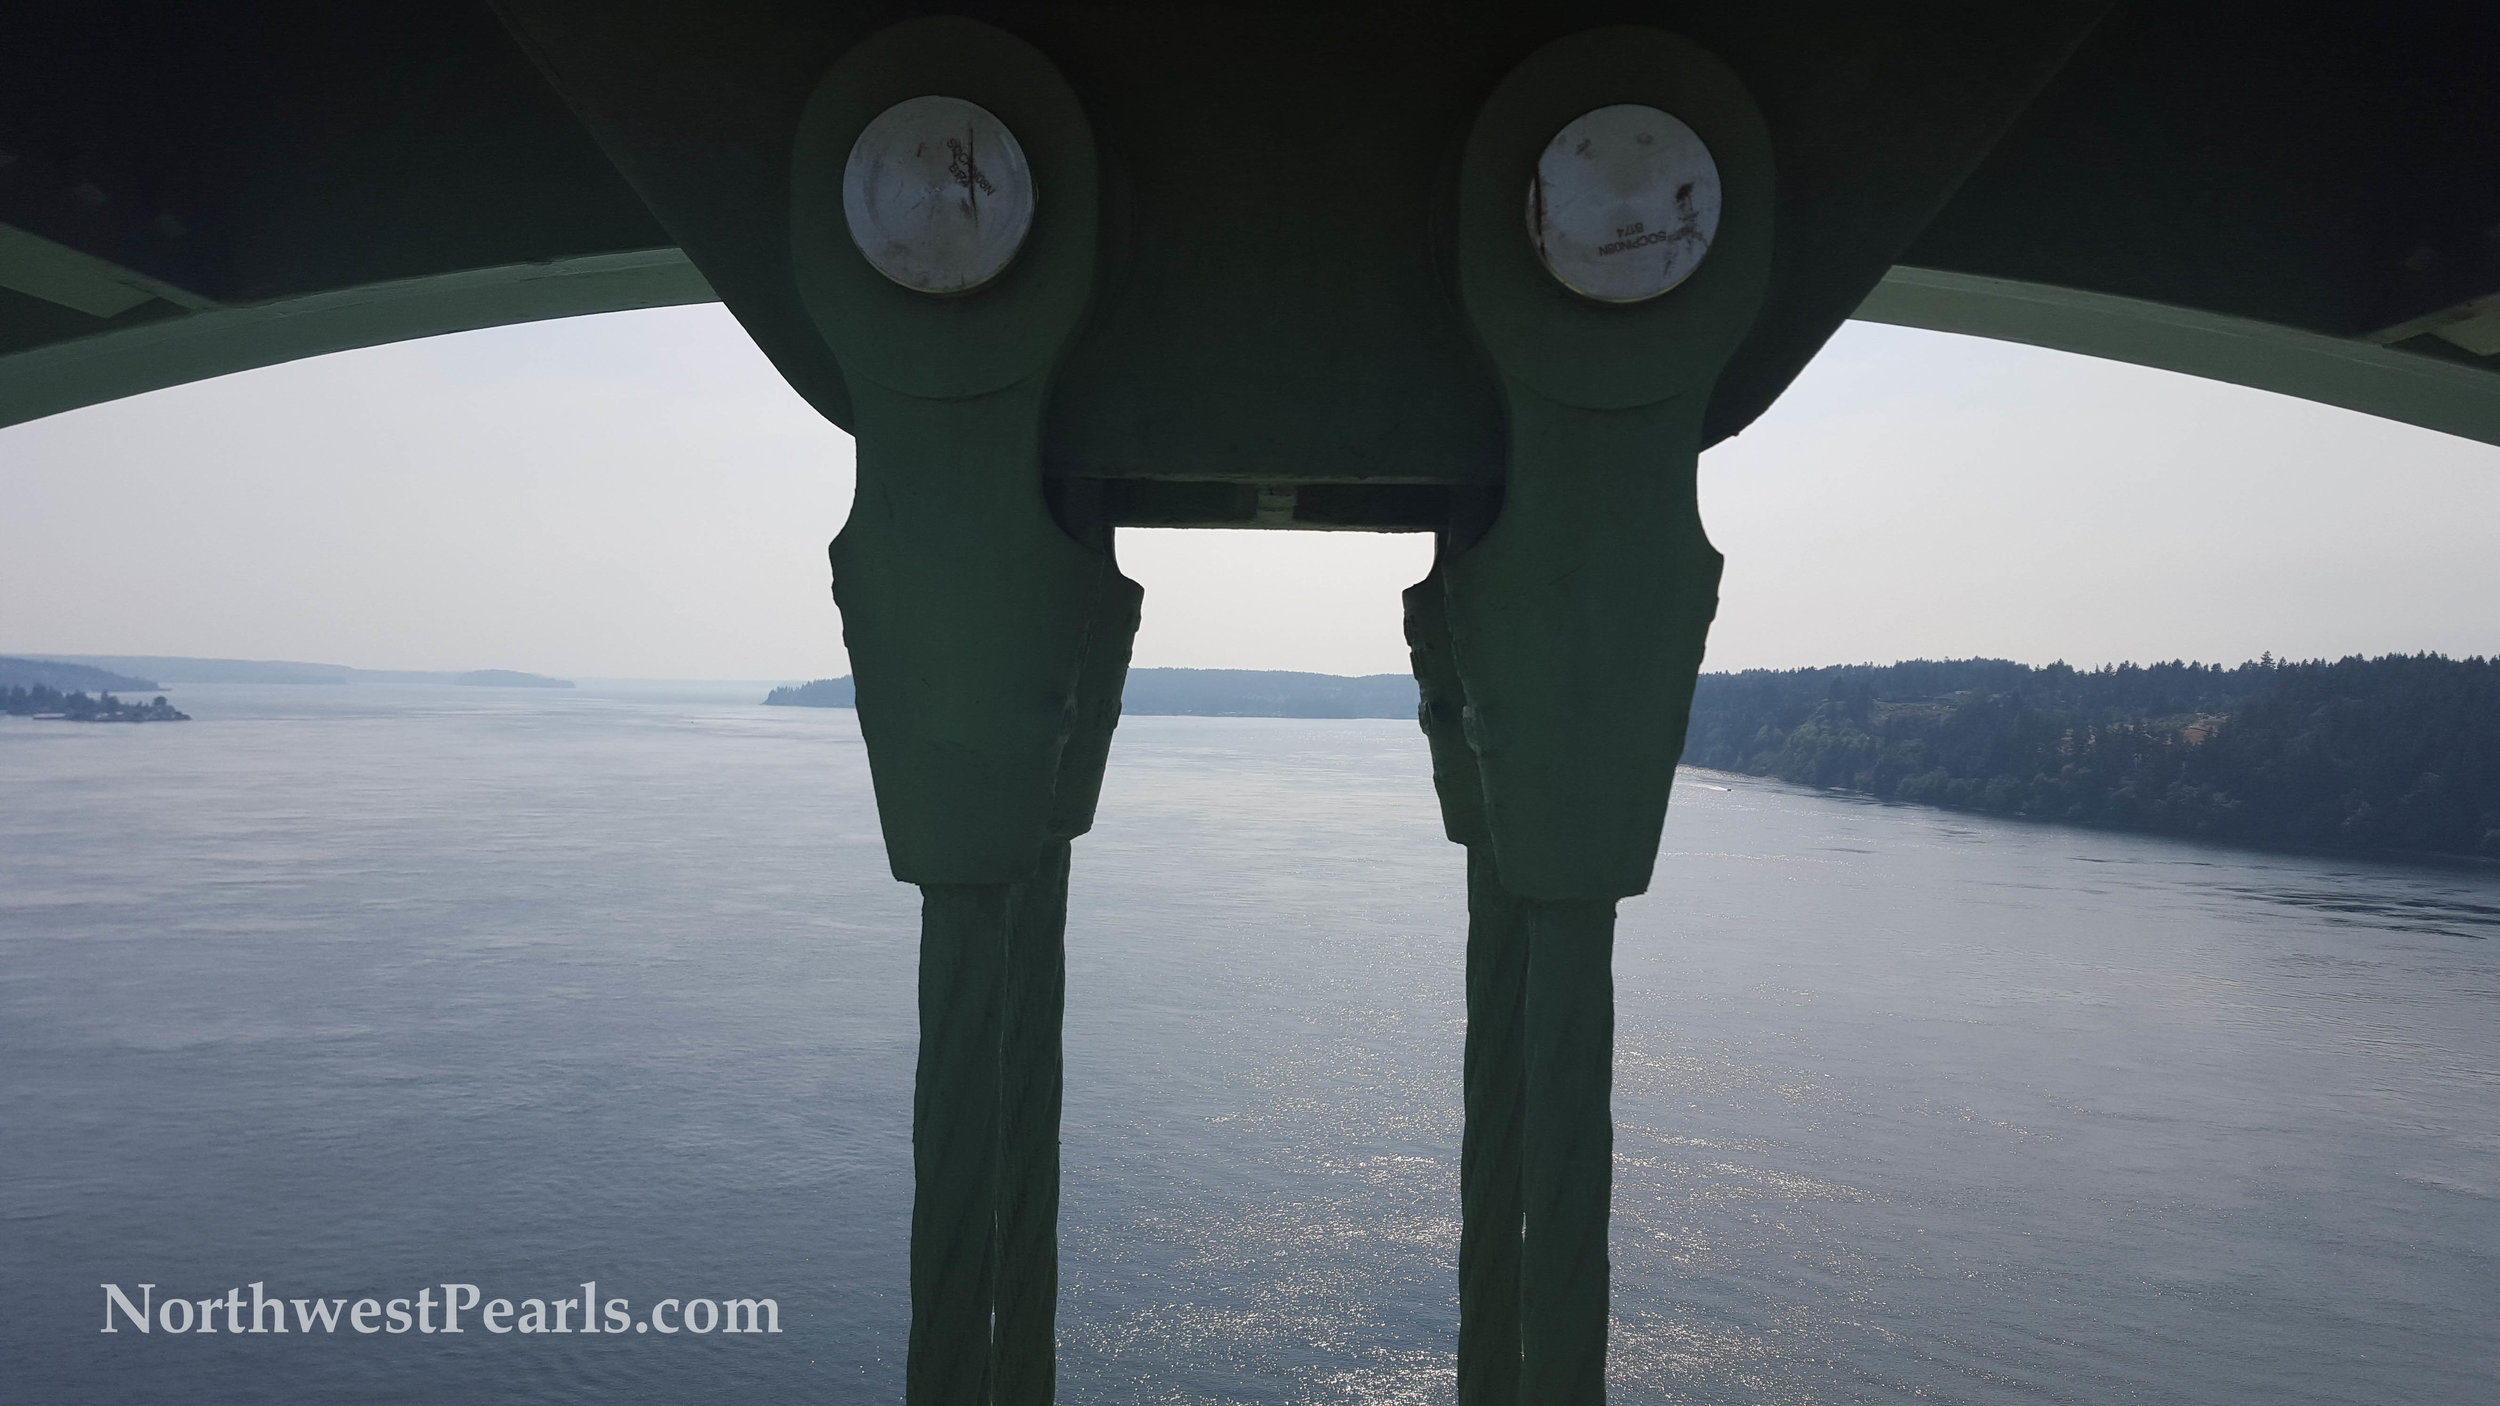 Northwest Pearls: The Tacoma Narrows Bridge